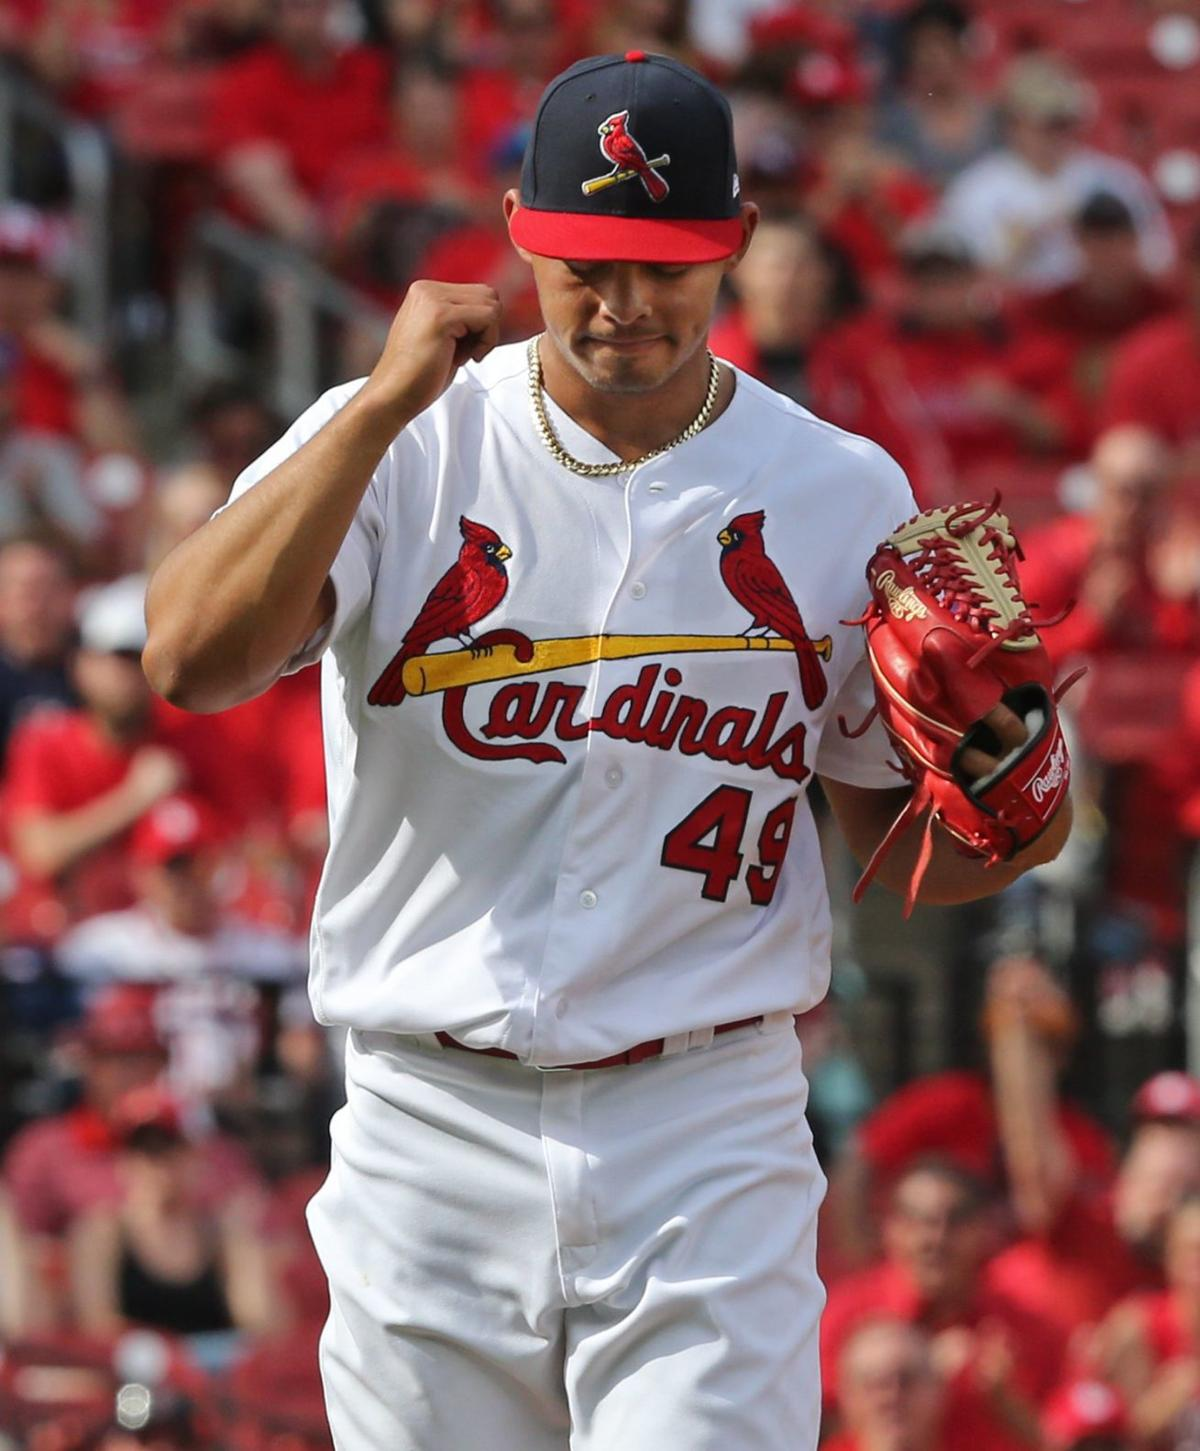 Cards beat the Padres 4-1 Sunday afternoon